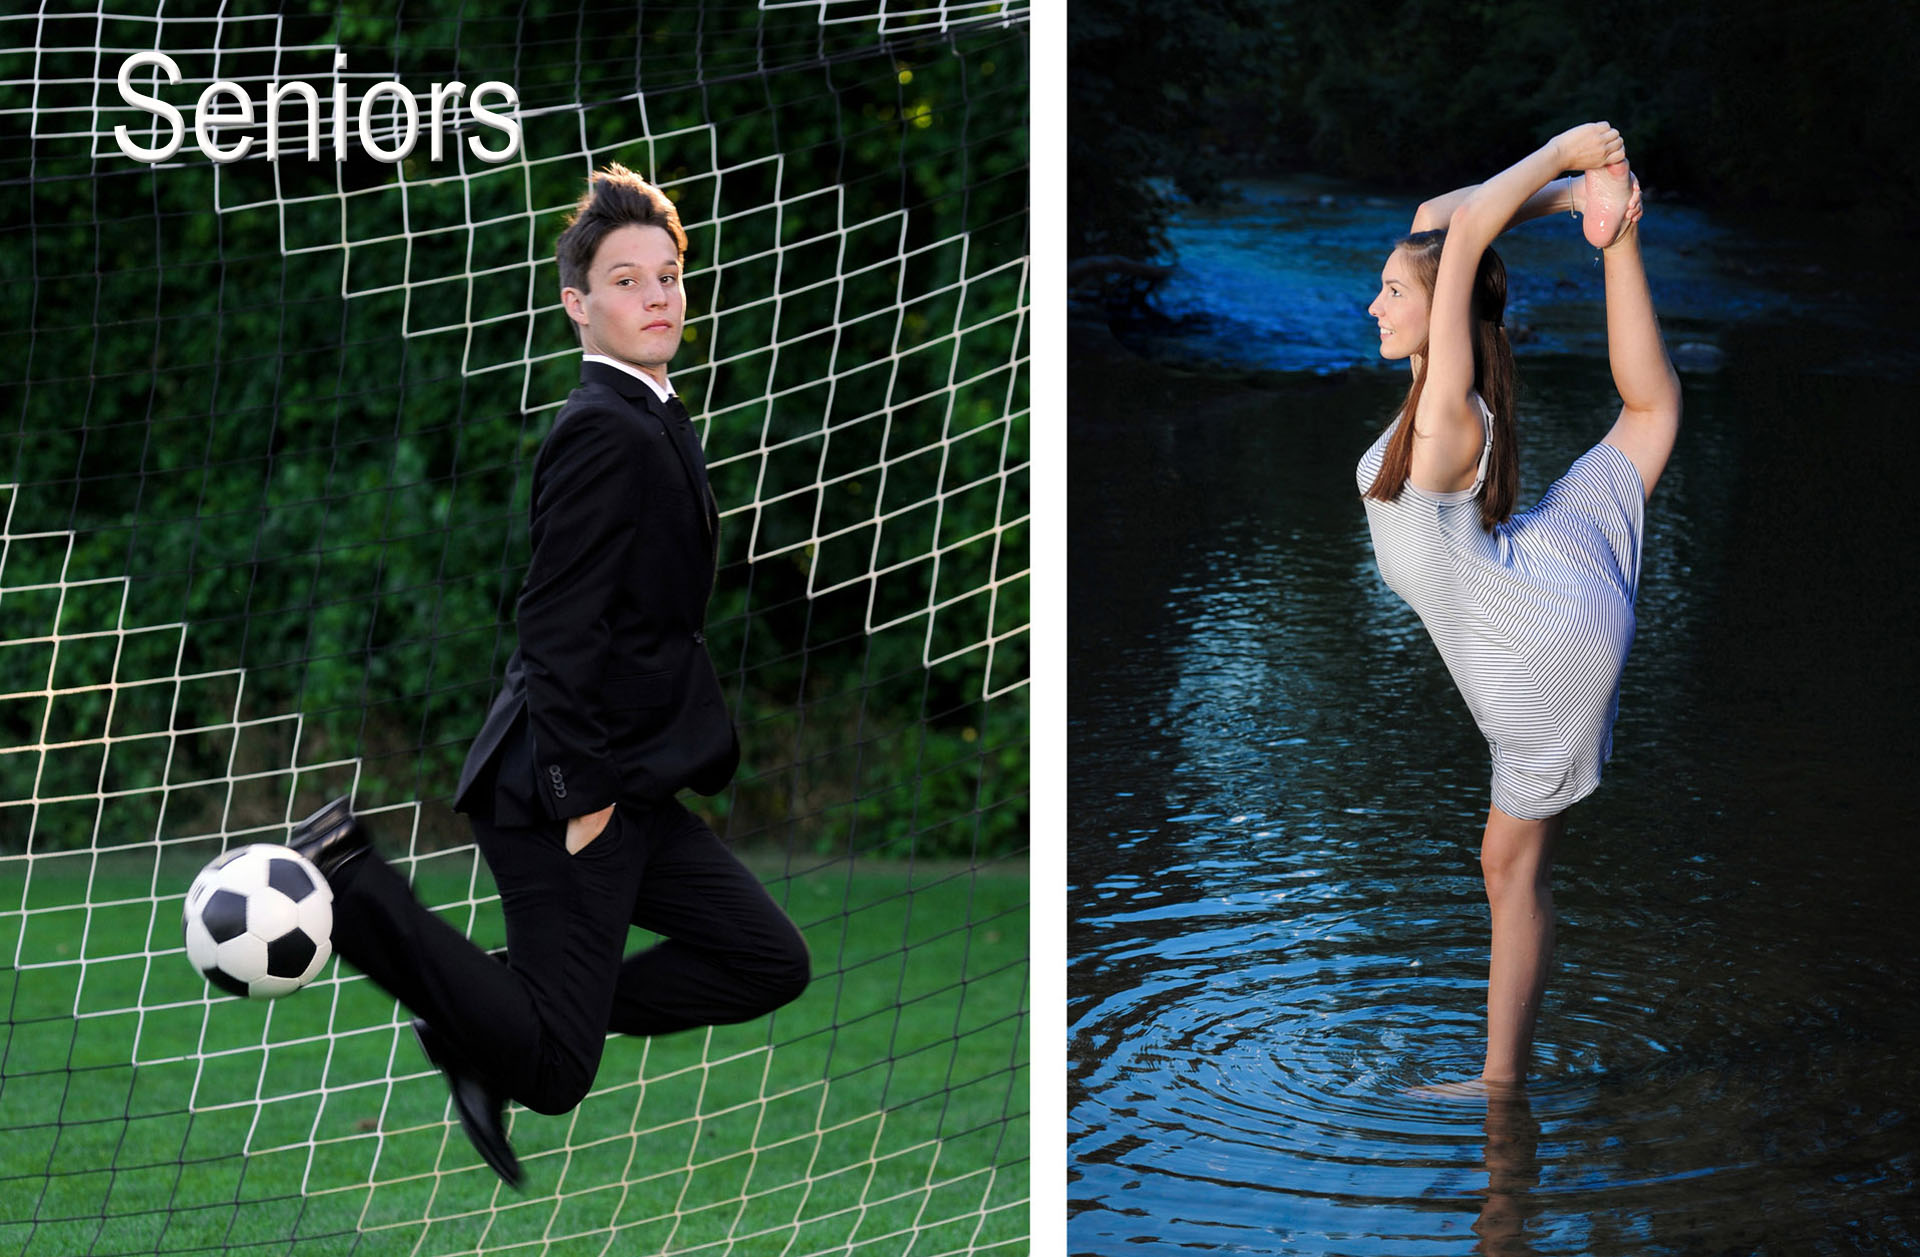 Metro Detroit senior photography features unique images that showcase the senior's unique talents and interests photographed in a fun, casual way.